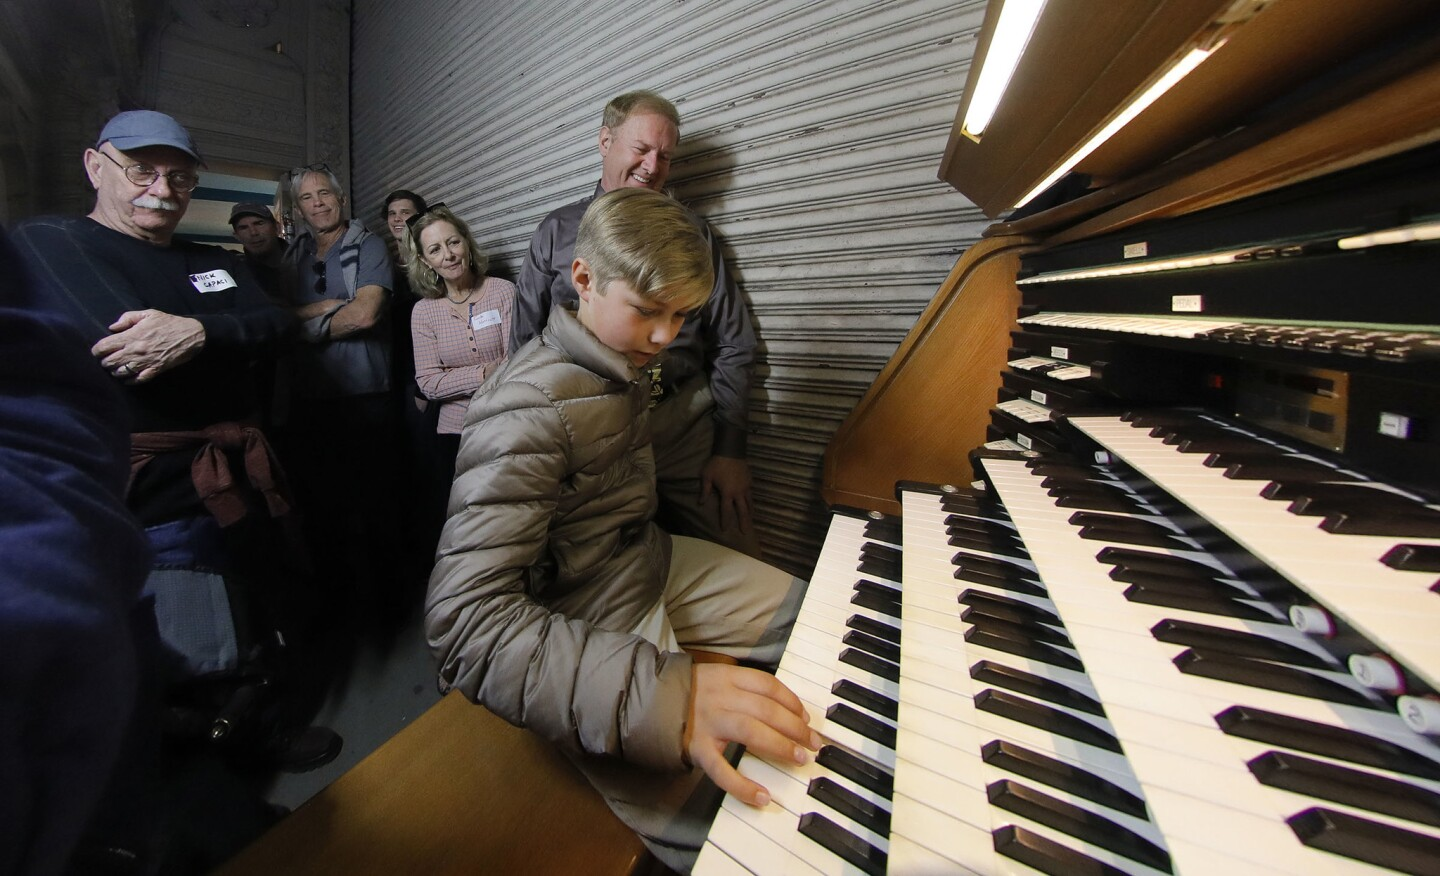 While relatives watch, 9-year-old Claus Russell of Napa, the great-great-great-grandson of John D. Spreckels, the youngest Spreckels descendant to attend the Spreckels family reunion, plays a few notes at the Spreckels Organ Pavilion in Balboa Park.